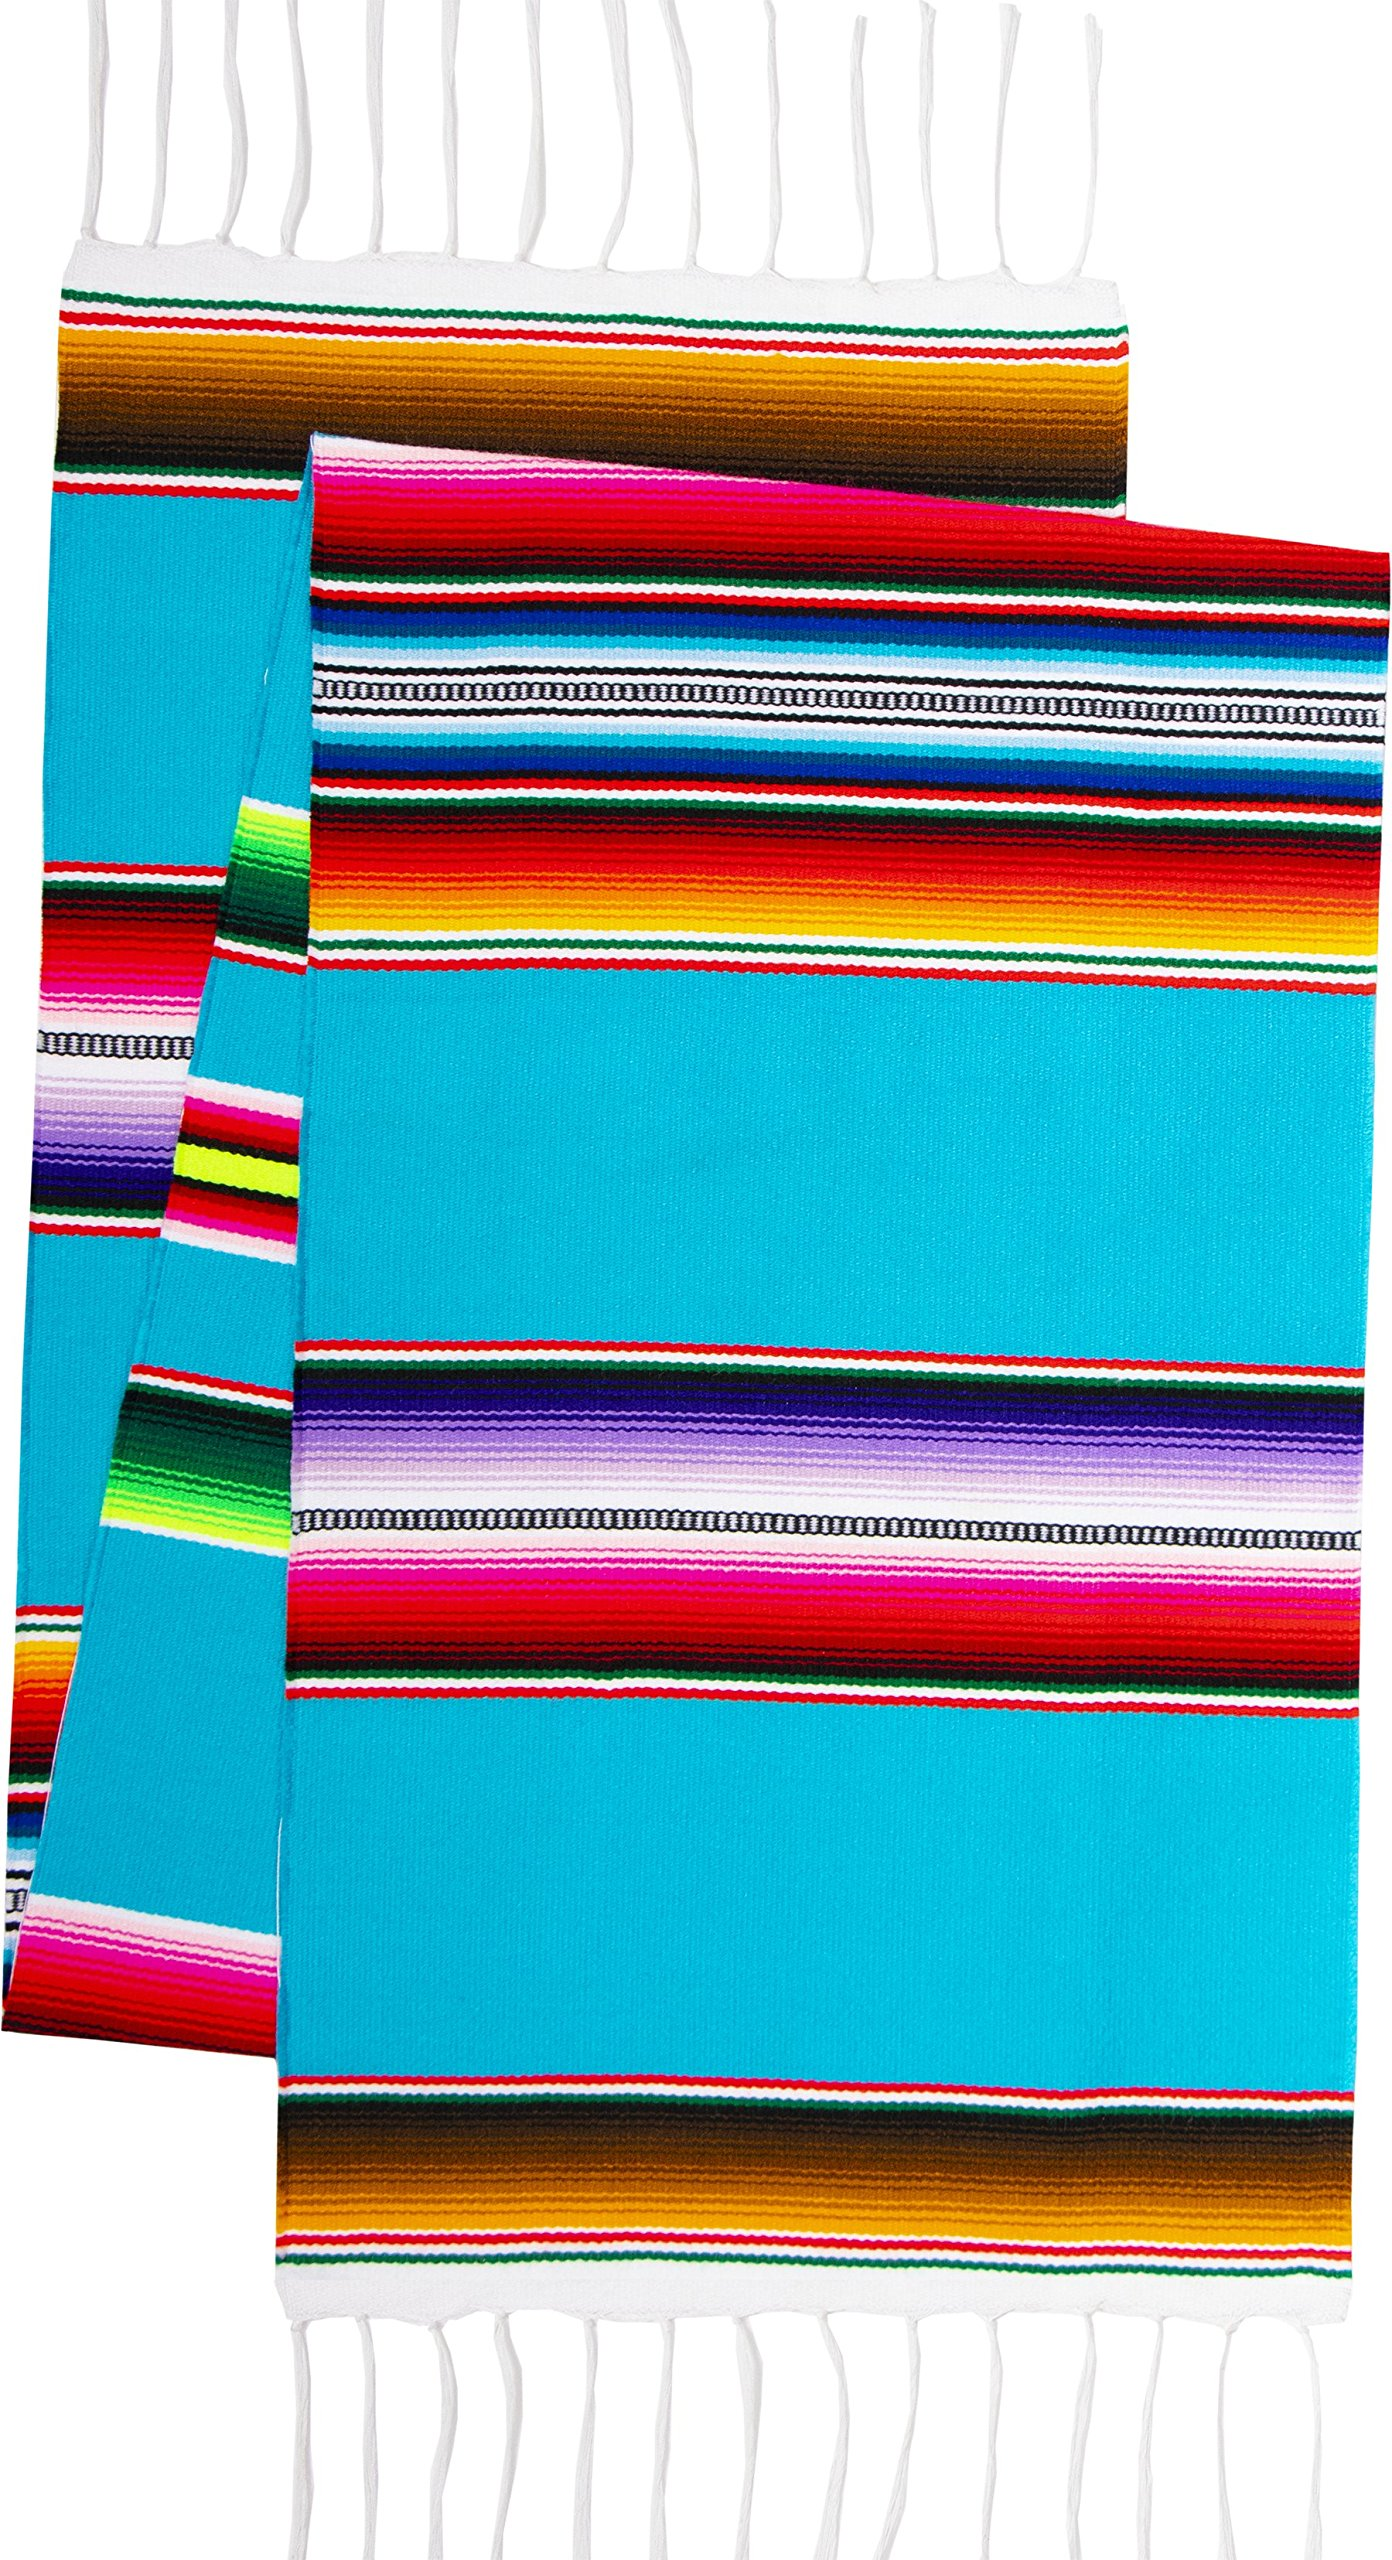 Genuine Mexican Premium Handwoven Bright MexicanTable Runner Saltillo Serape Colorful Striped Sarape 60'' x 12'' (Turquoise) by Threads West (Image #2)